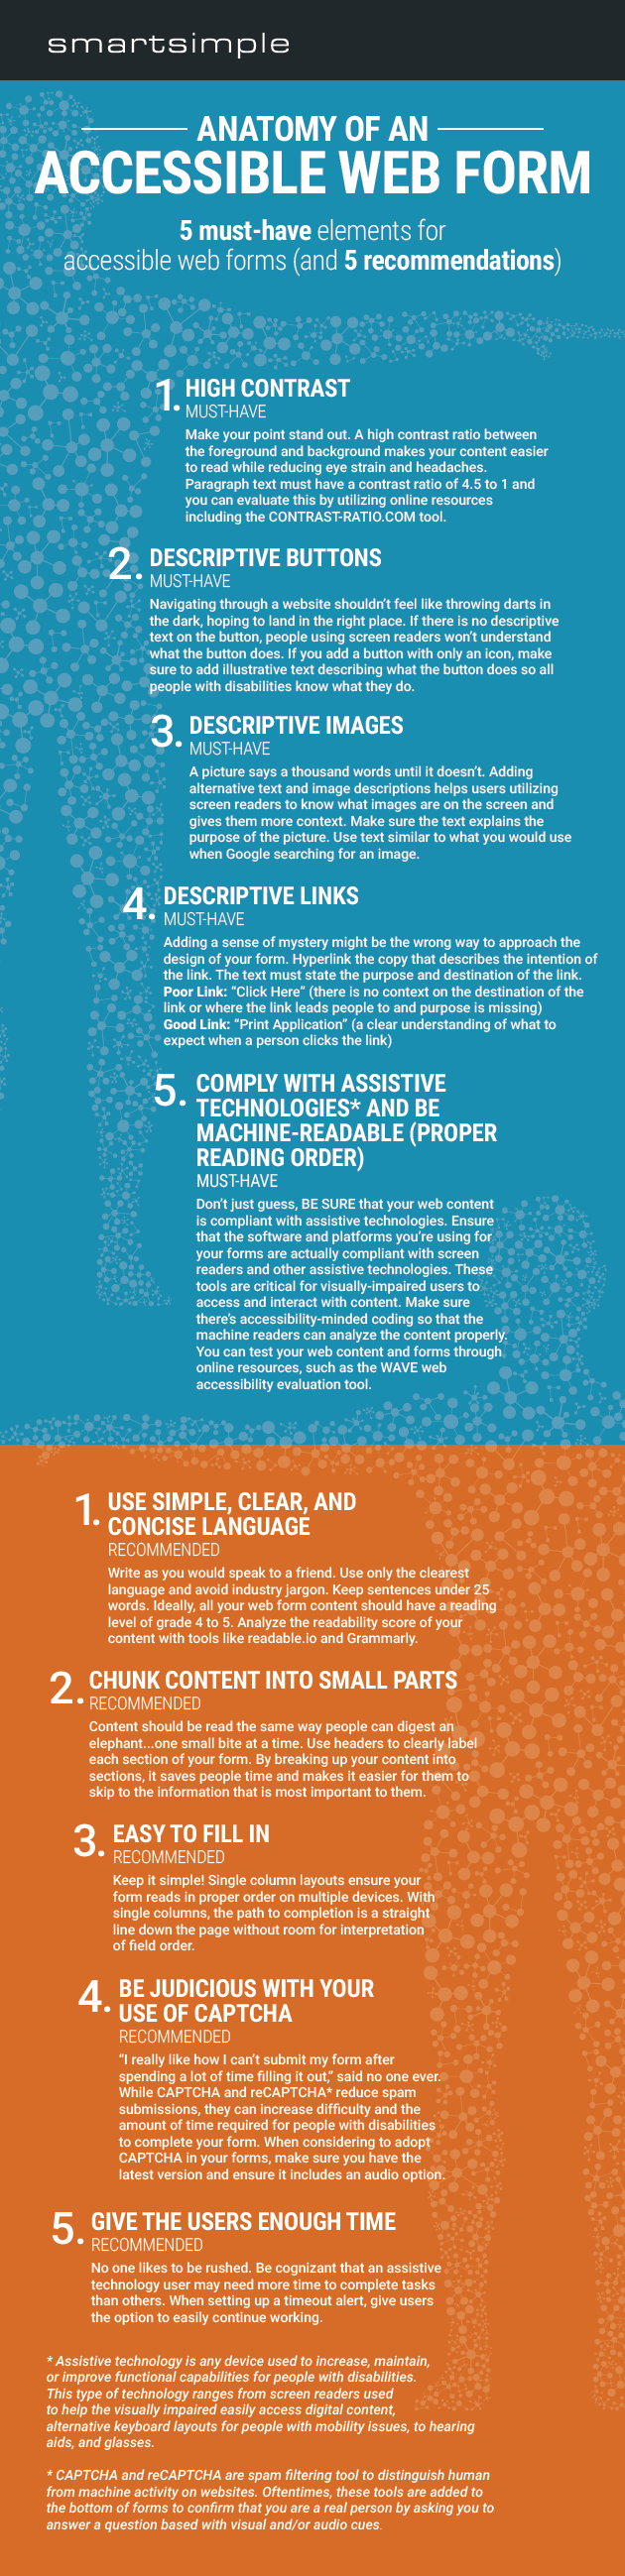 Image of accessible web form infographic